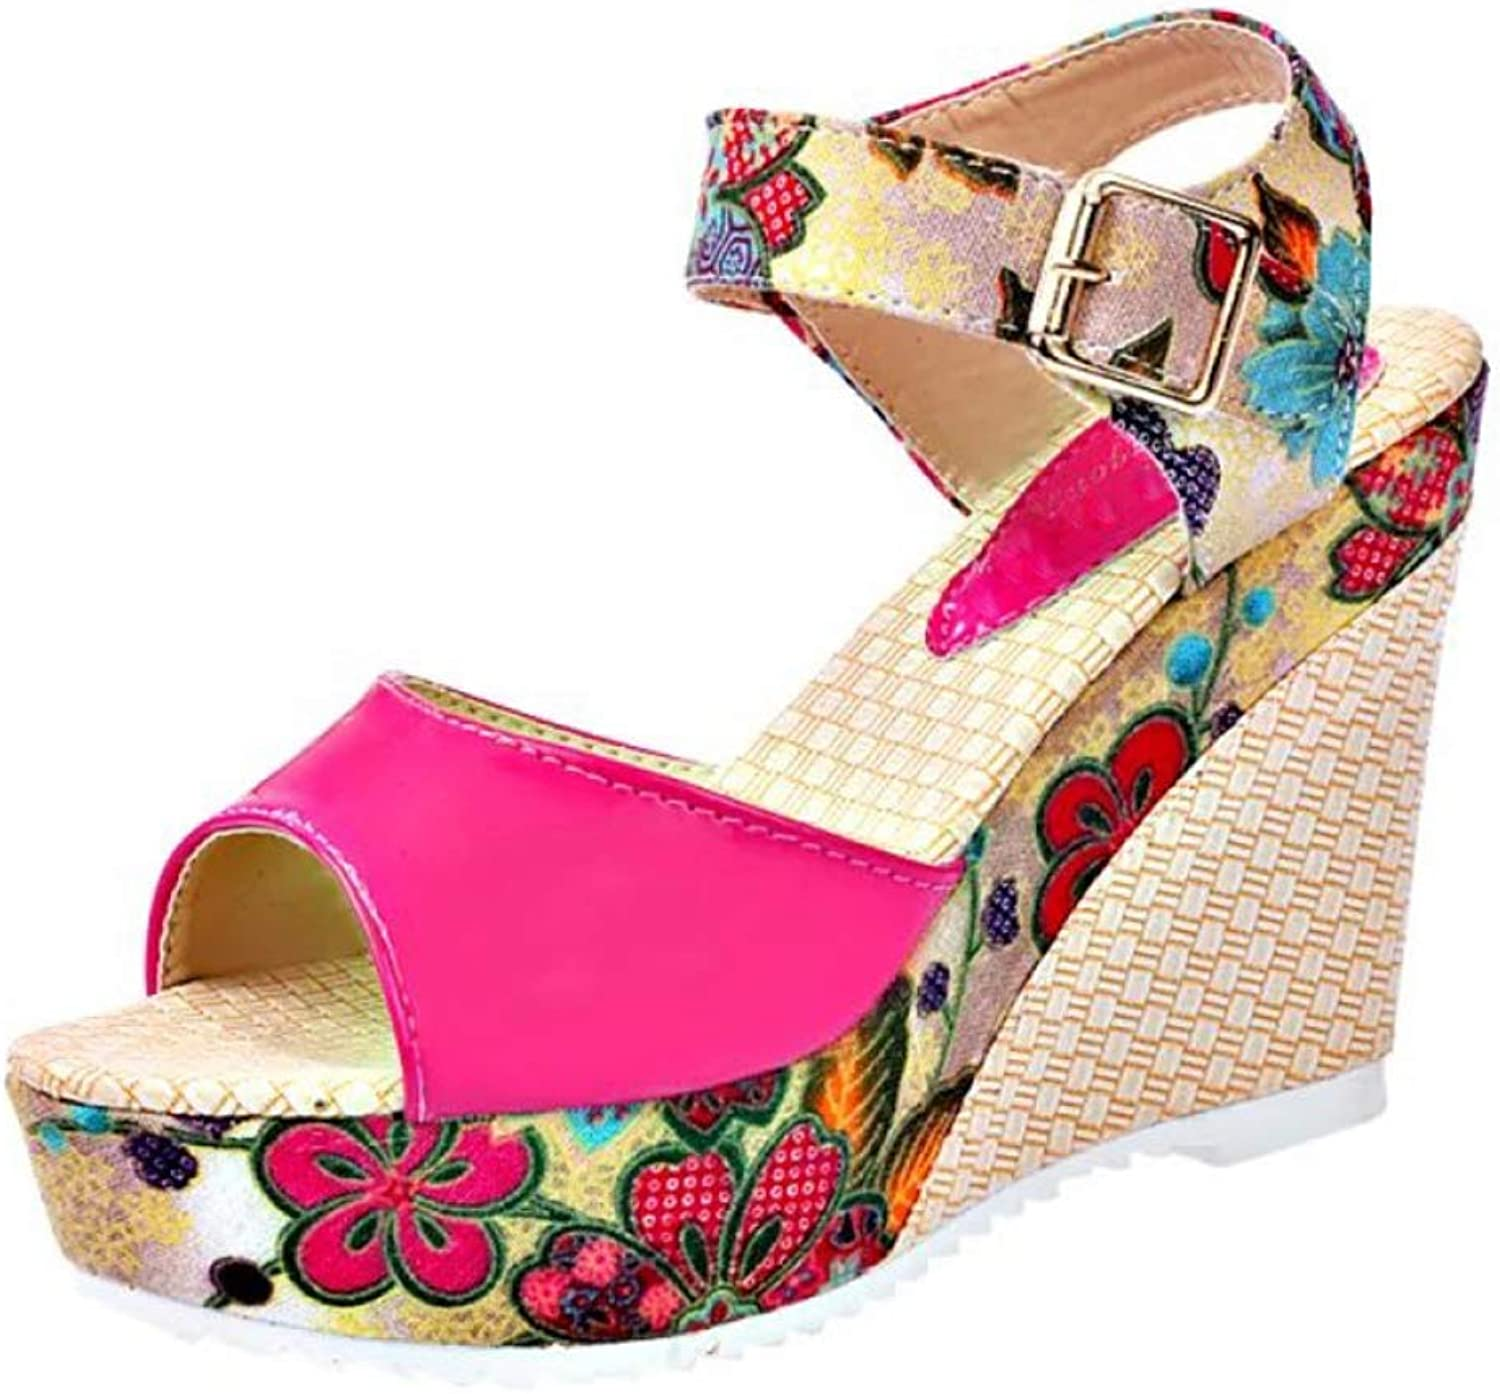 T-JULY Women Platform Wedges Sandals Woman Floral Super High Heels Open Toe Slippers Sandals Summer Casual